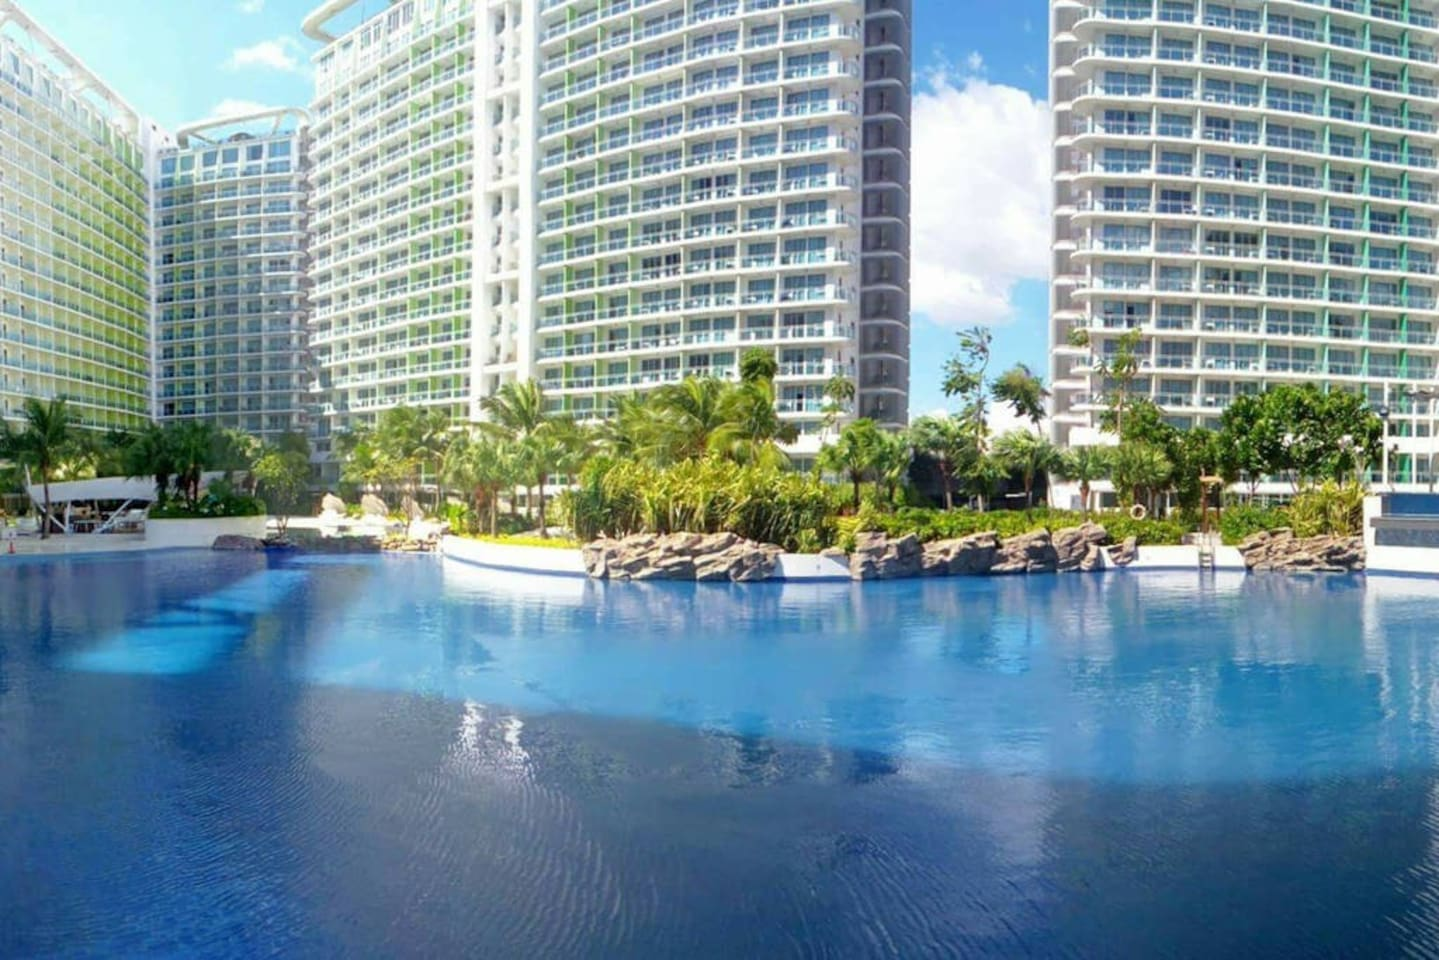 Man made beach w/ wave pool (PLEASE READ THE RULES AND REGULATIONS BEFORE BOOKING)